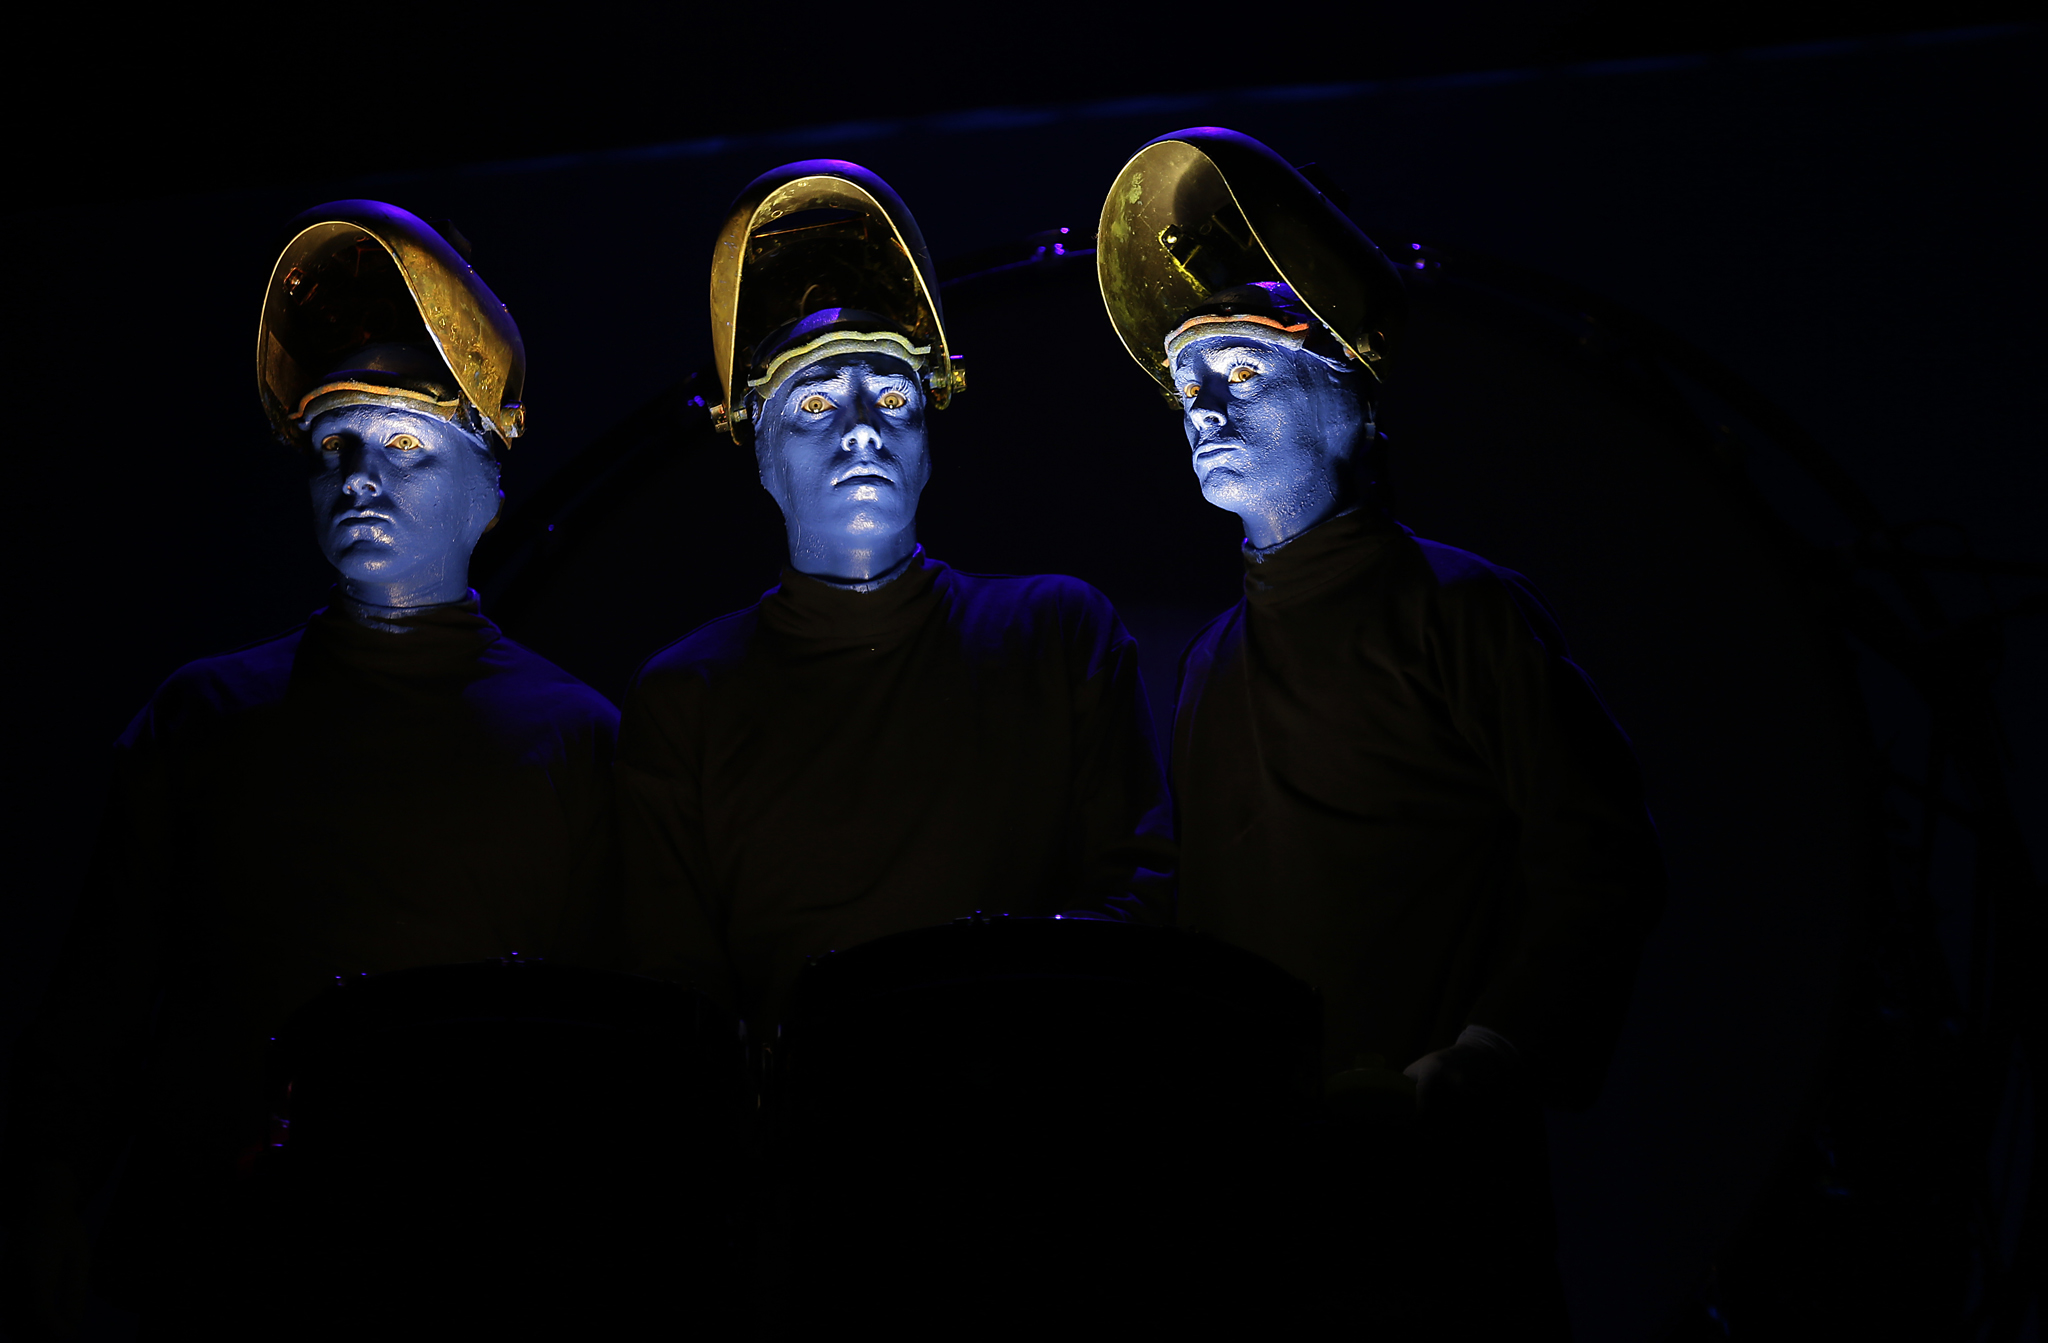 Blue Man Group performs during a media preview in Singapore